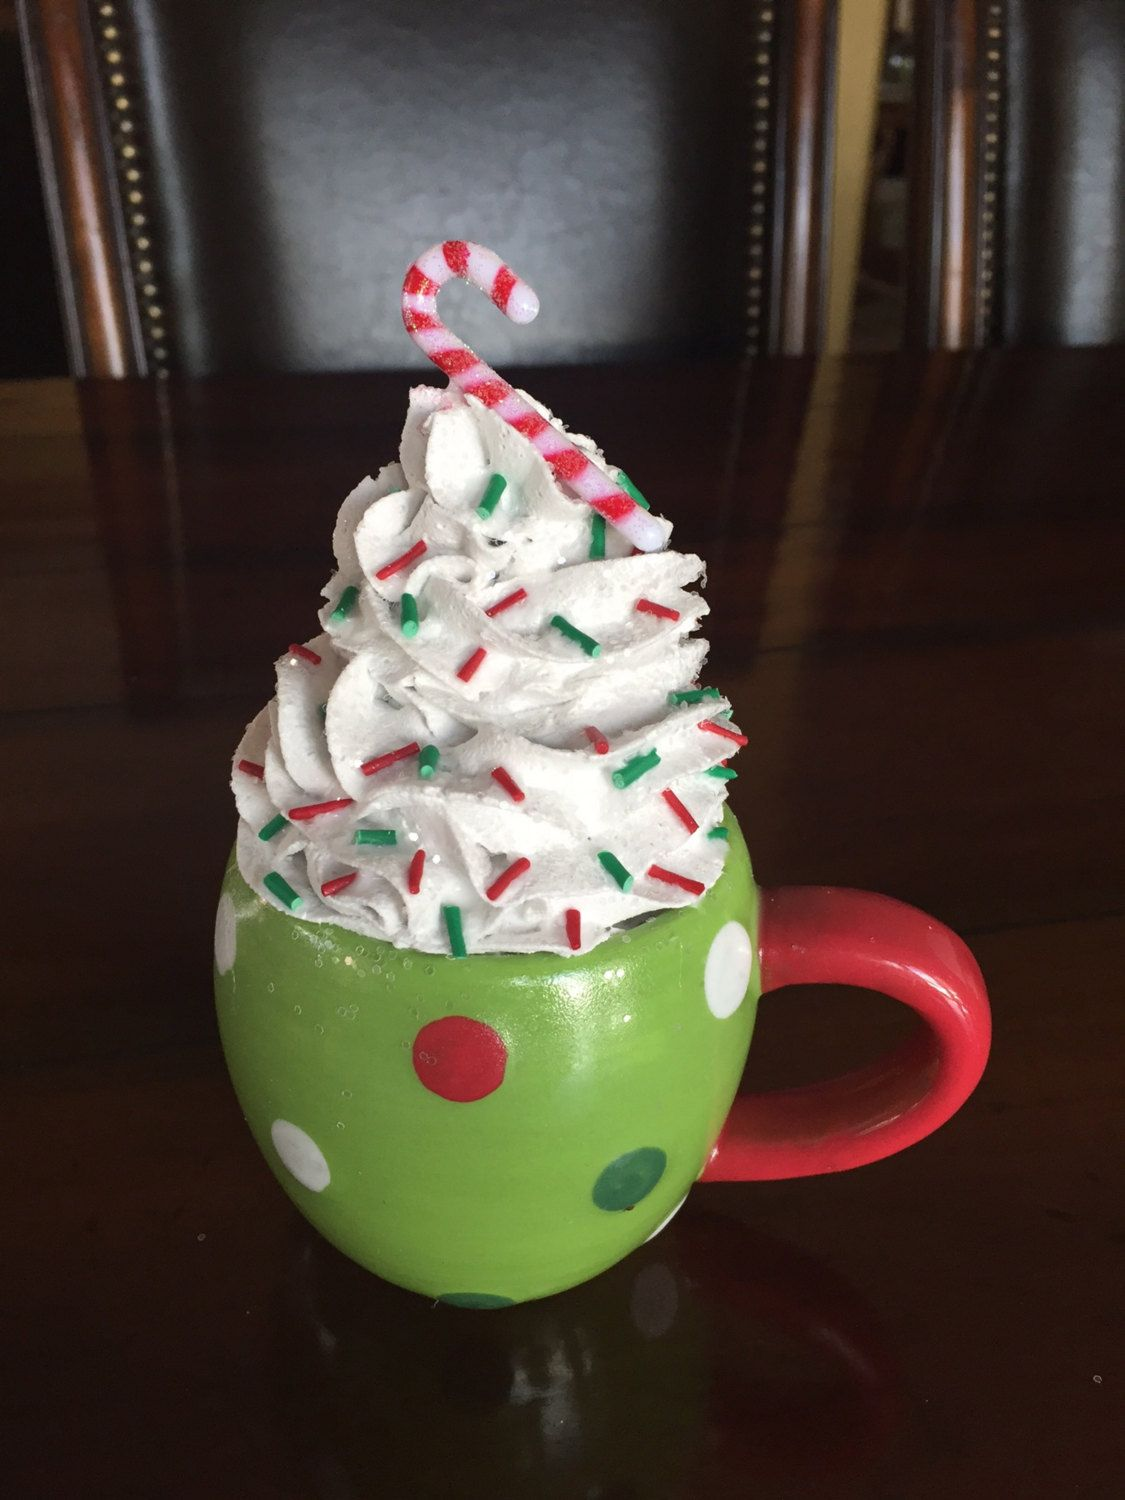 Polka Dot Candy Cane Fake Cupcake in Mug by 0CalorieCakesbyChris on Etsy